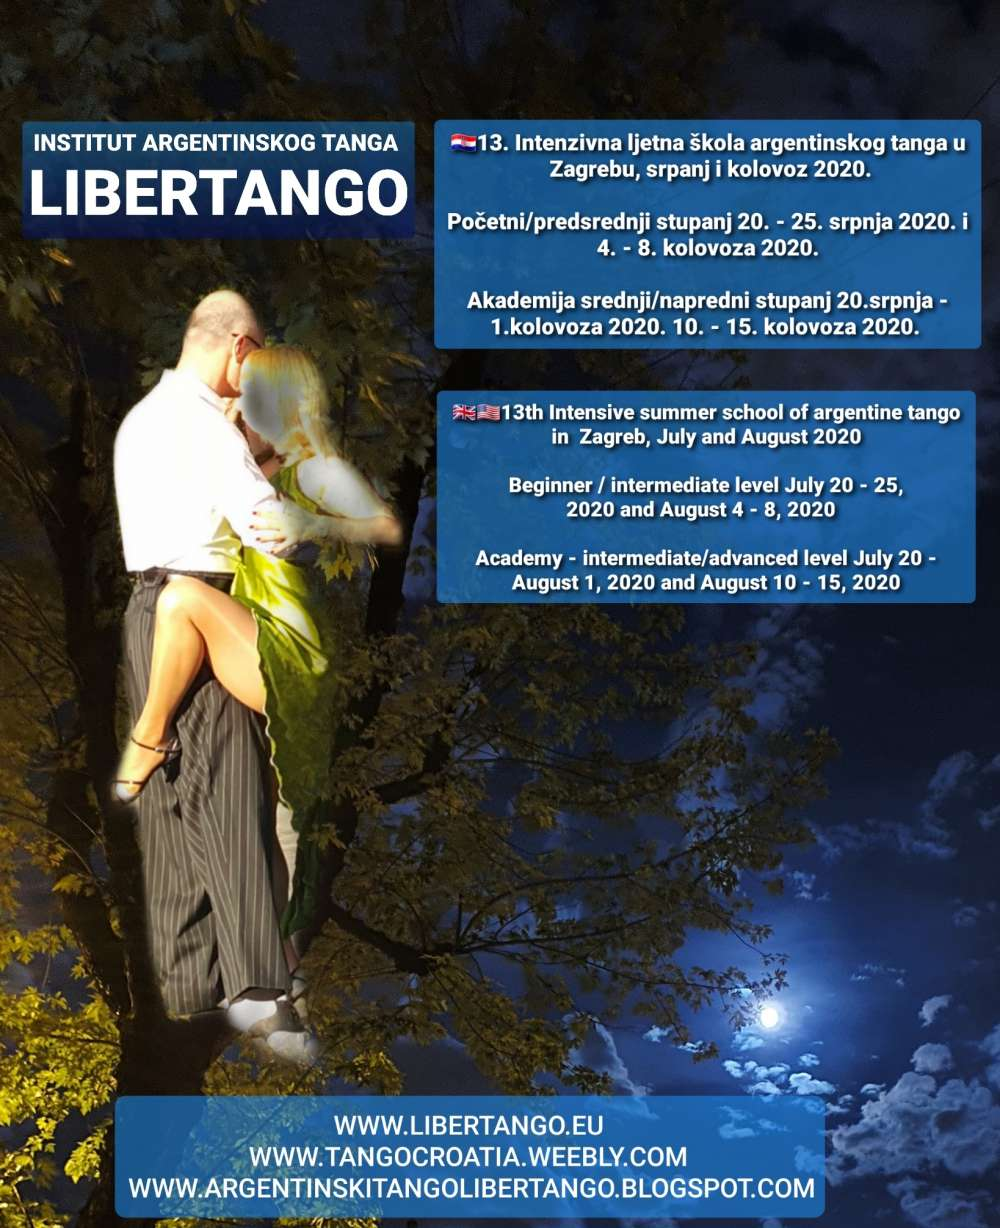 Argentine Tango Class, Lecture, Practica, Weekender, Workshop: 13th Intensive summer school, Academy – advance level in July